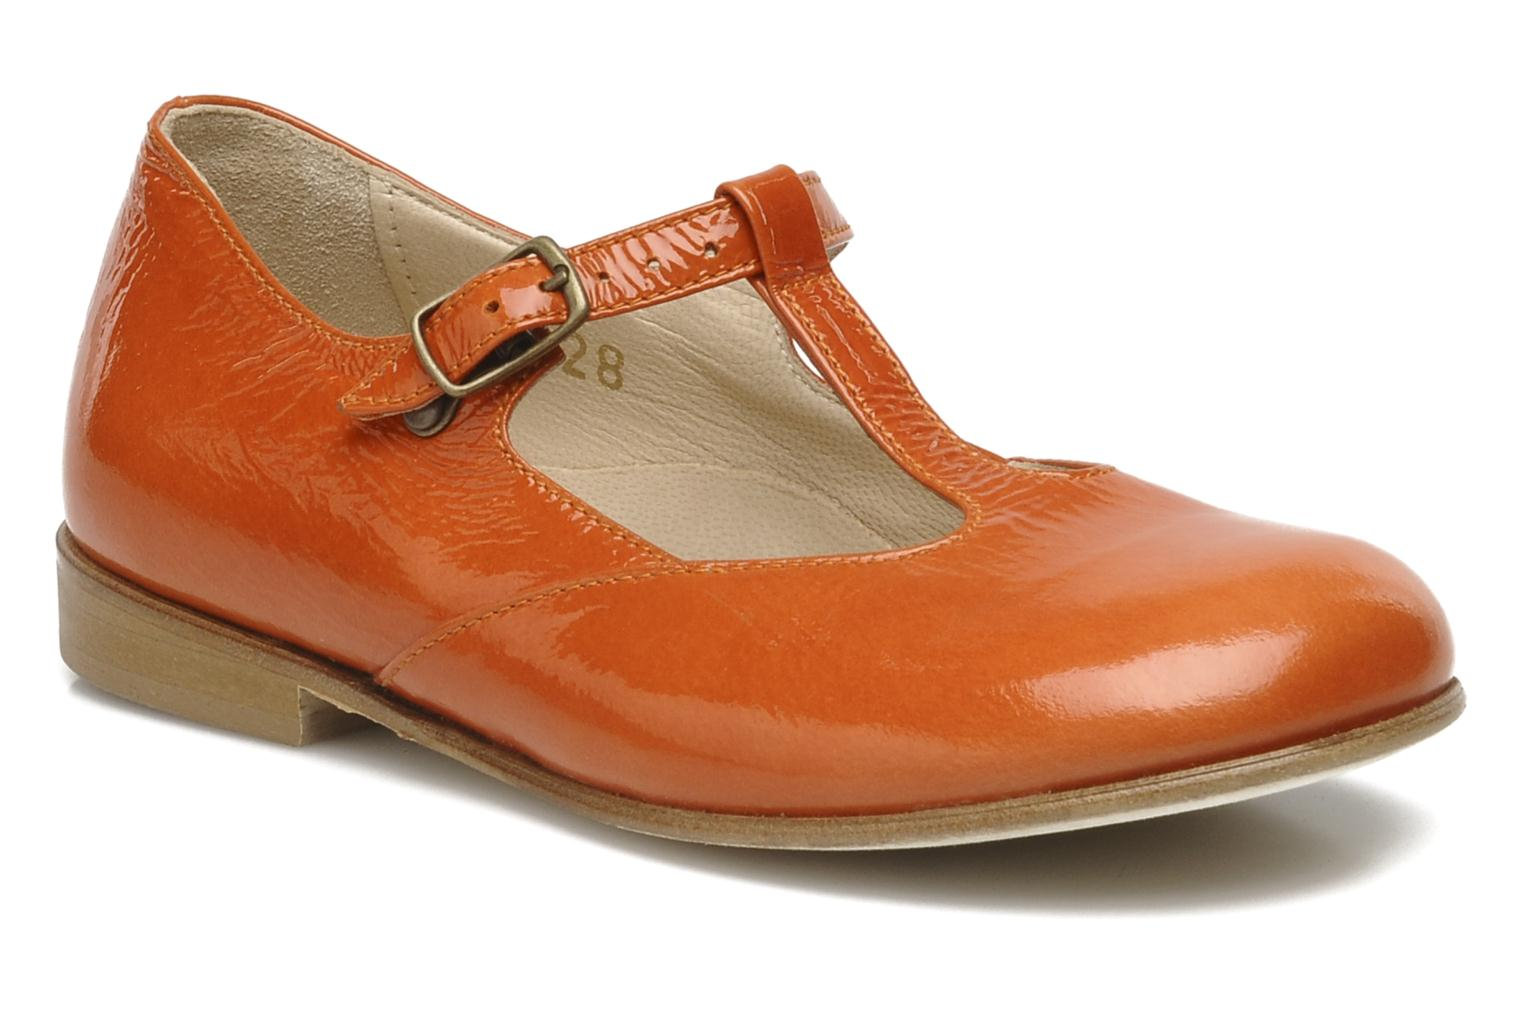 P 232 P 232 Annabelle Ballet Pumps In Orange At Sarenza Co Uk